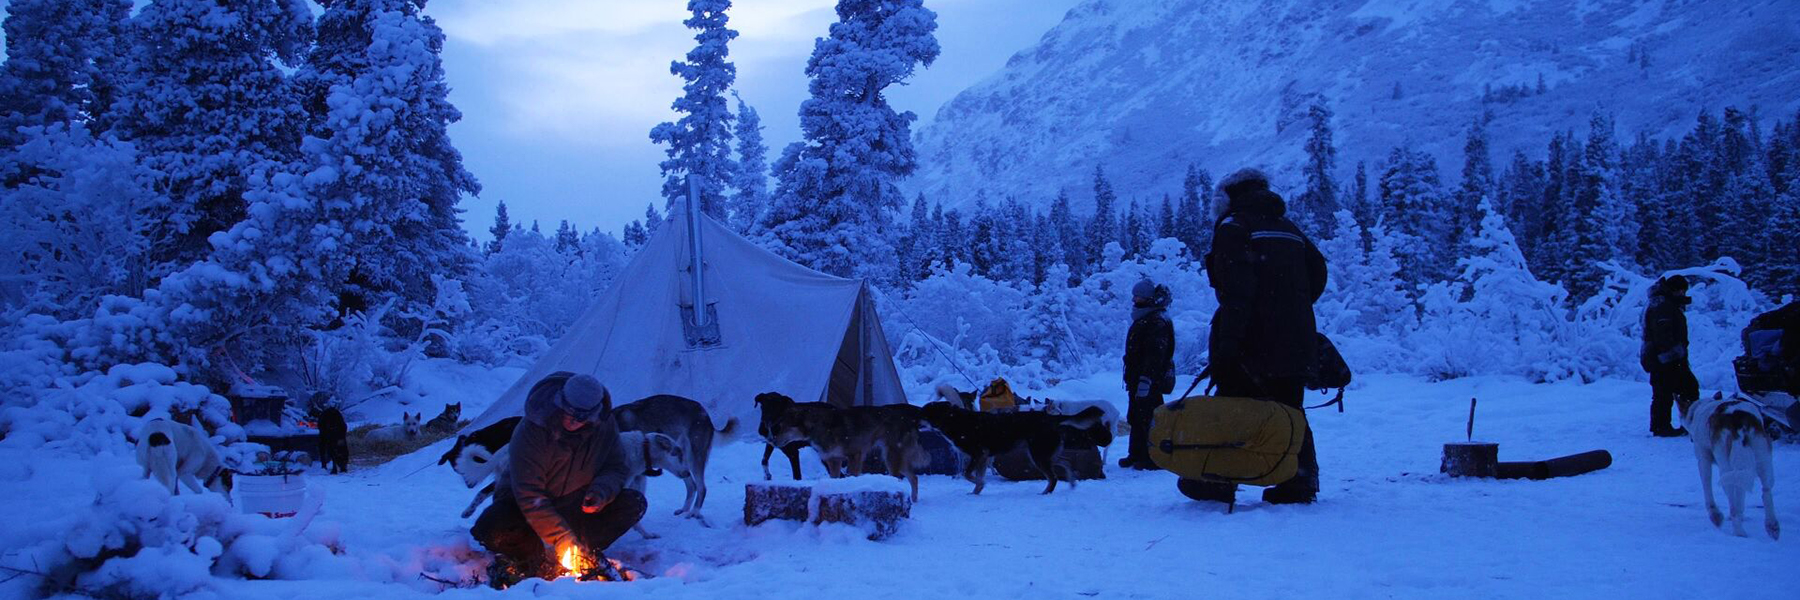 Into the Wild Adventures, dog sledding tours and winter adventures in the Yukon Territory, Canada - Dogsledding Tours